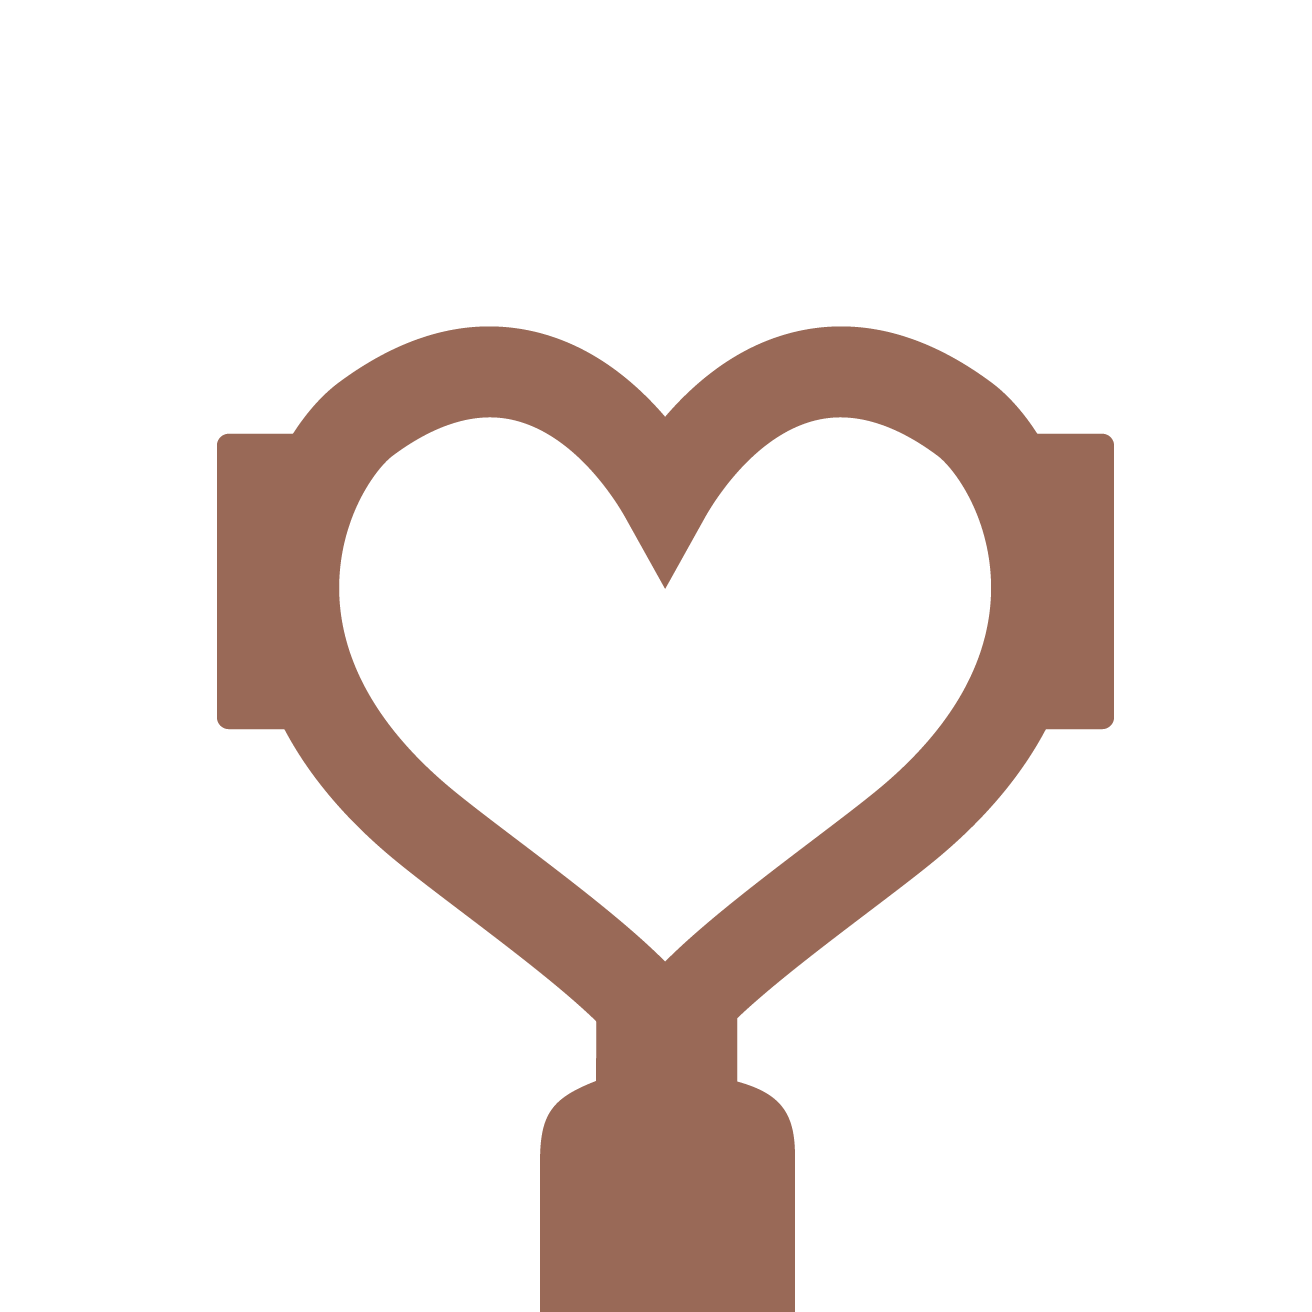 Moccamaster Technivorm KBG741 AO Red